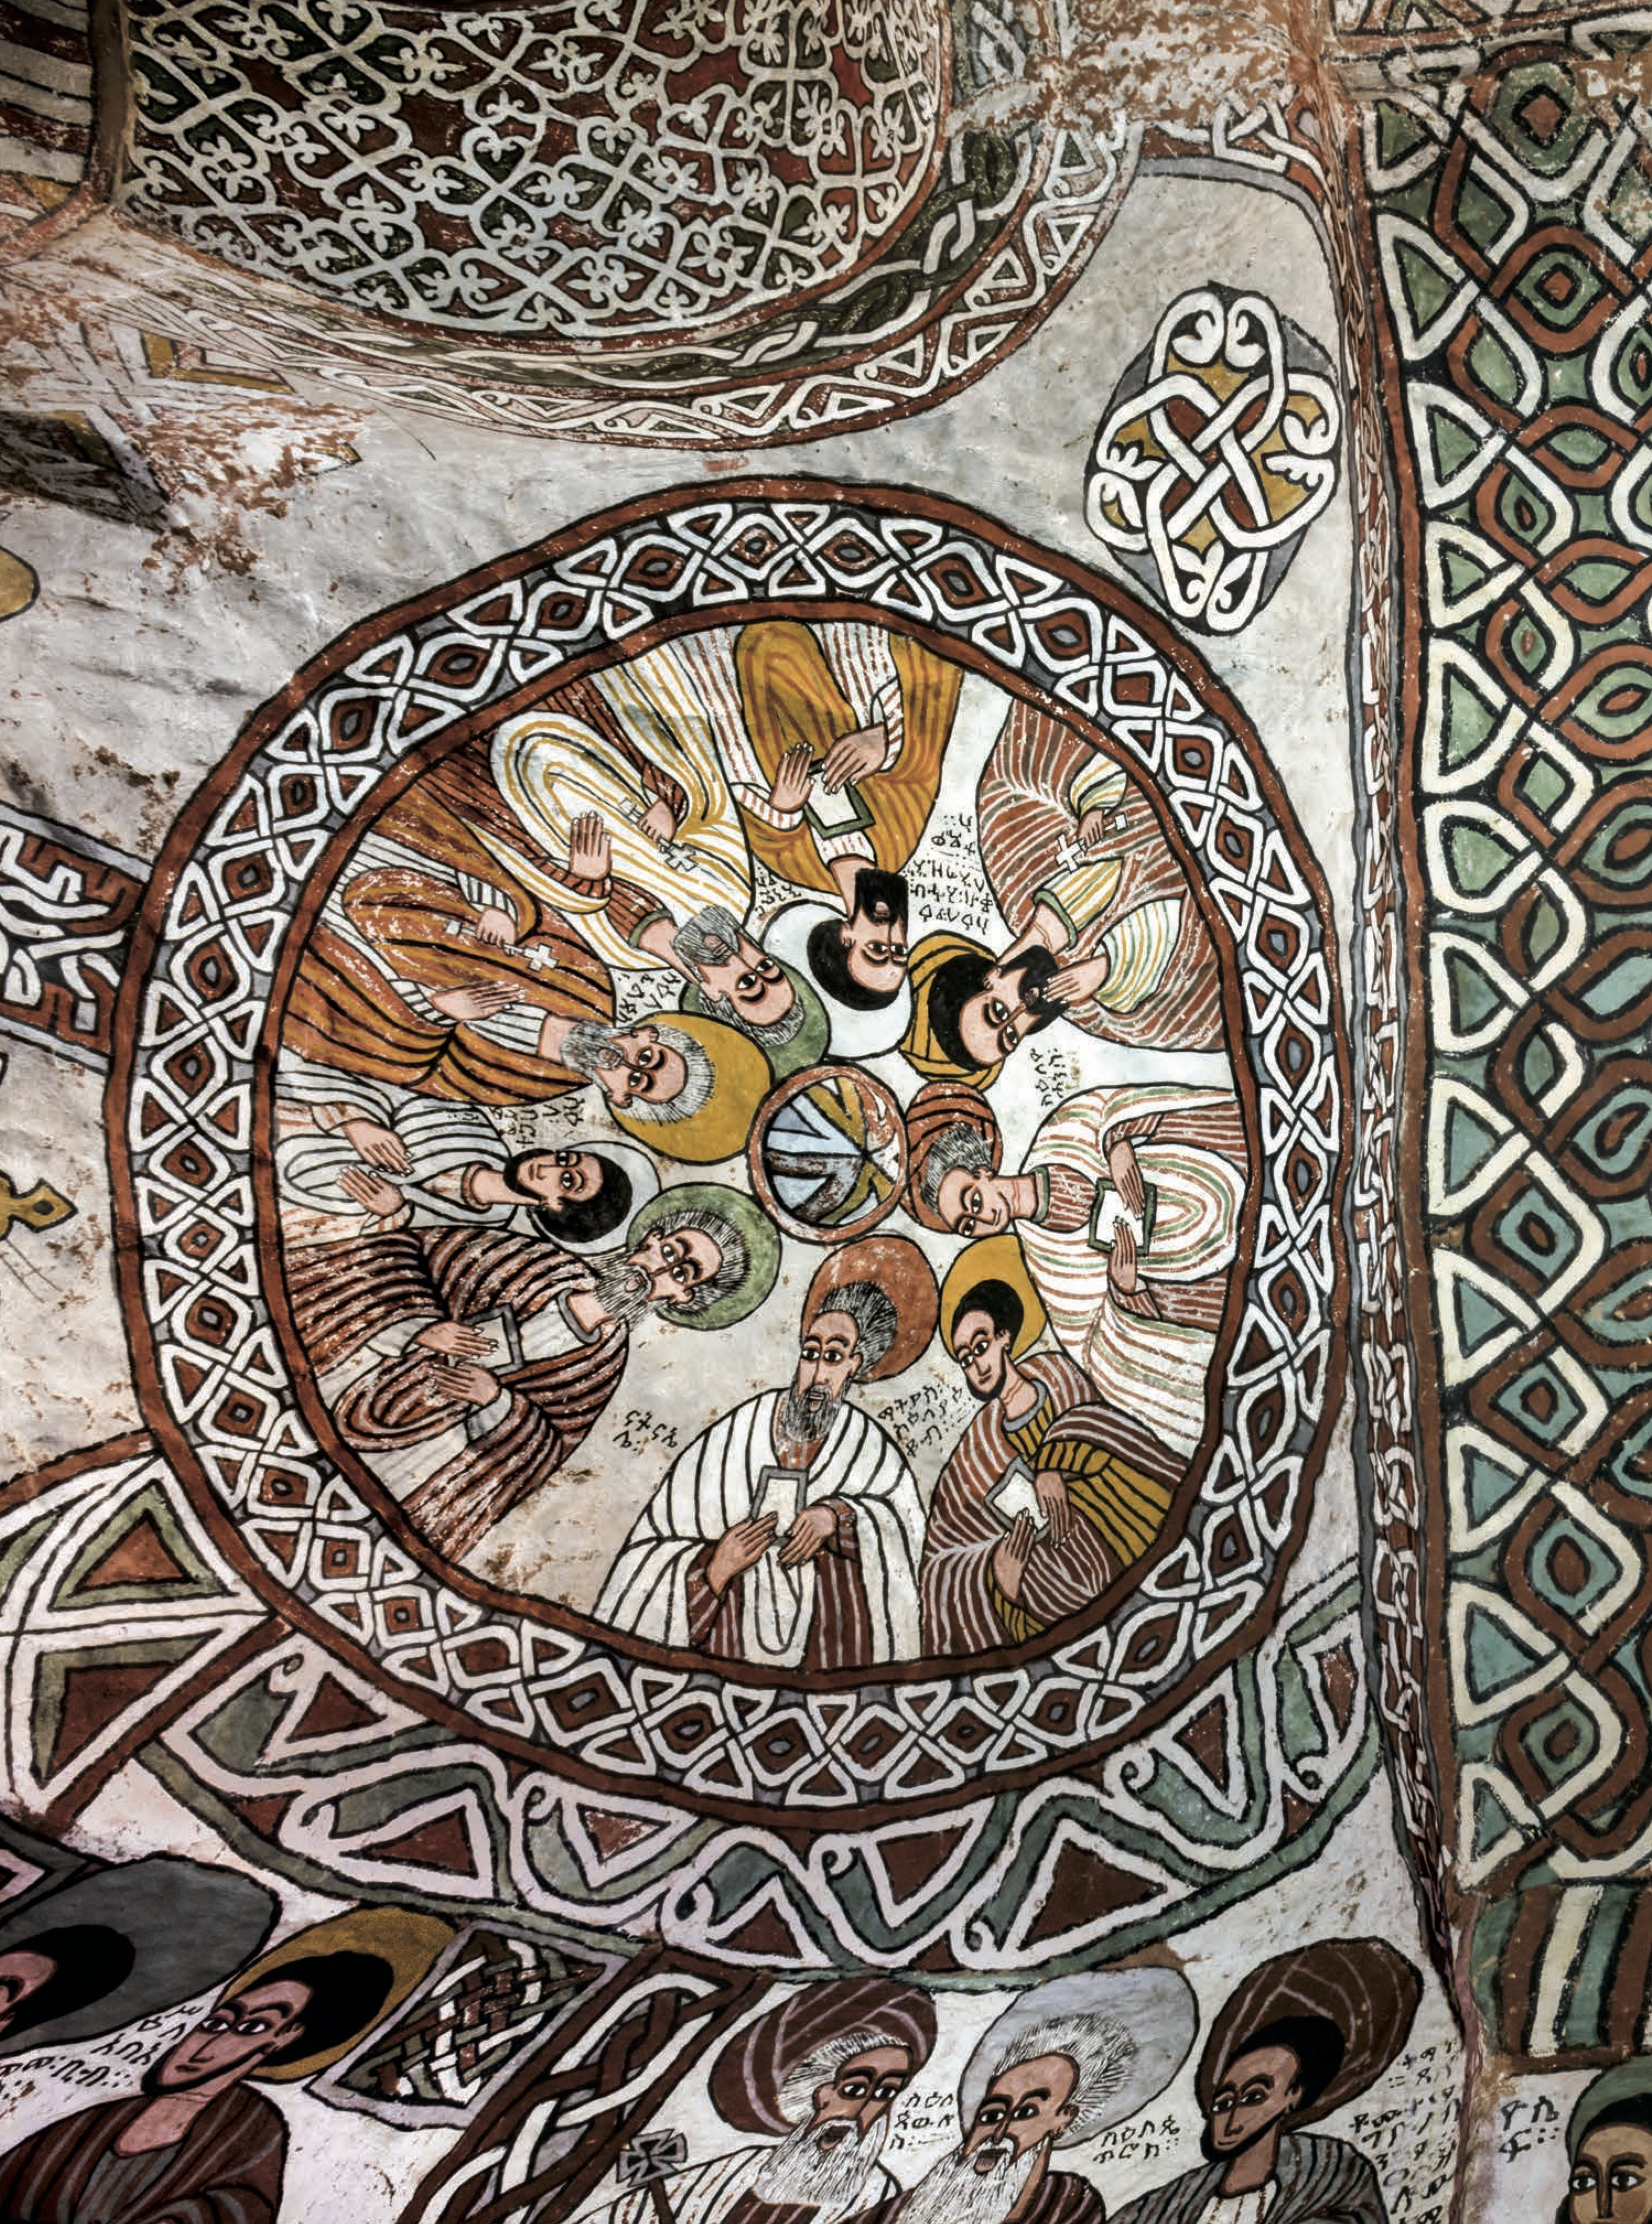 The dry air and lack of humidity has preserved these frescoes in their original perfection. On the left cupola are nine of the Apostles. On the right are eight of the Nine Saints. Clockwise from the bottom: Aragawi, Alef, Guba, Tsehema, Pantalewon, Garima, Likanos, and Aftse.